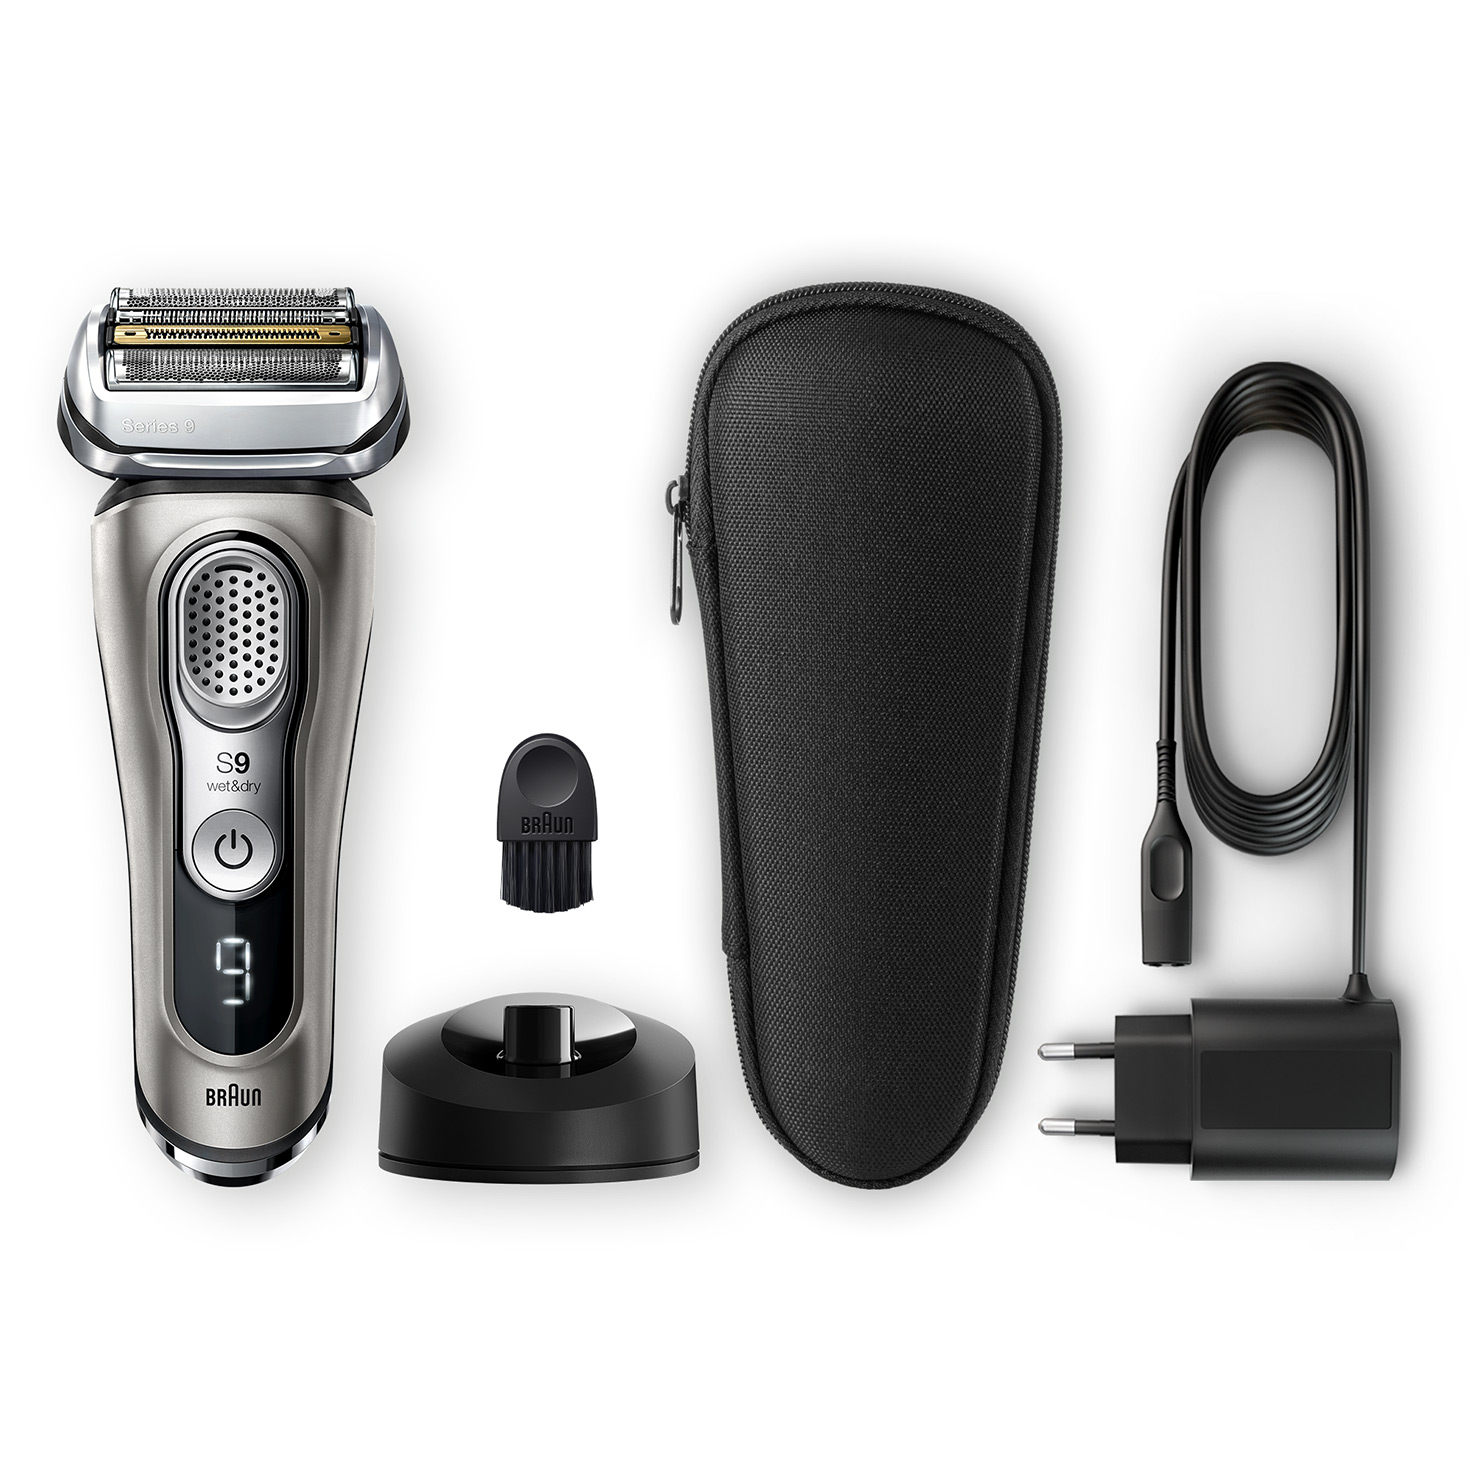 Series 9 9325s shaver - What´s in the box